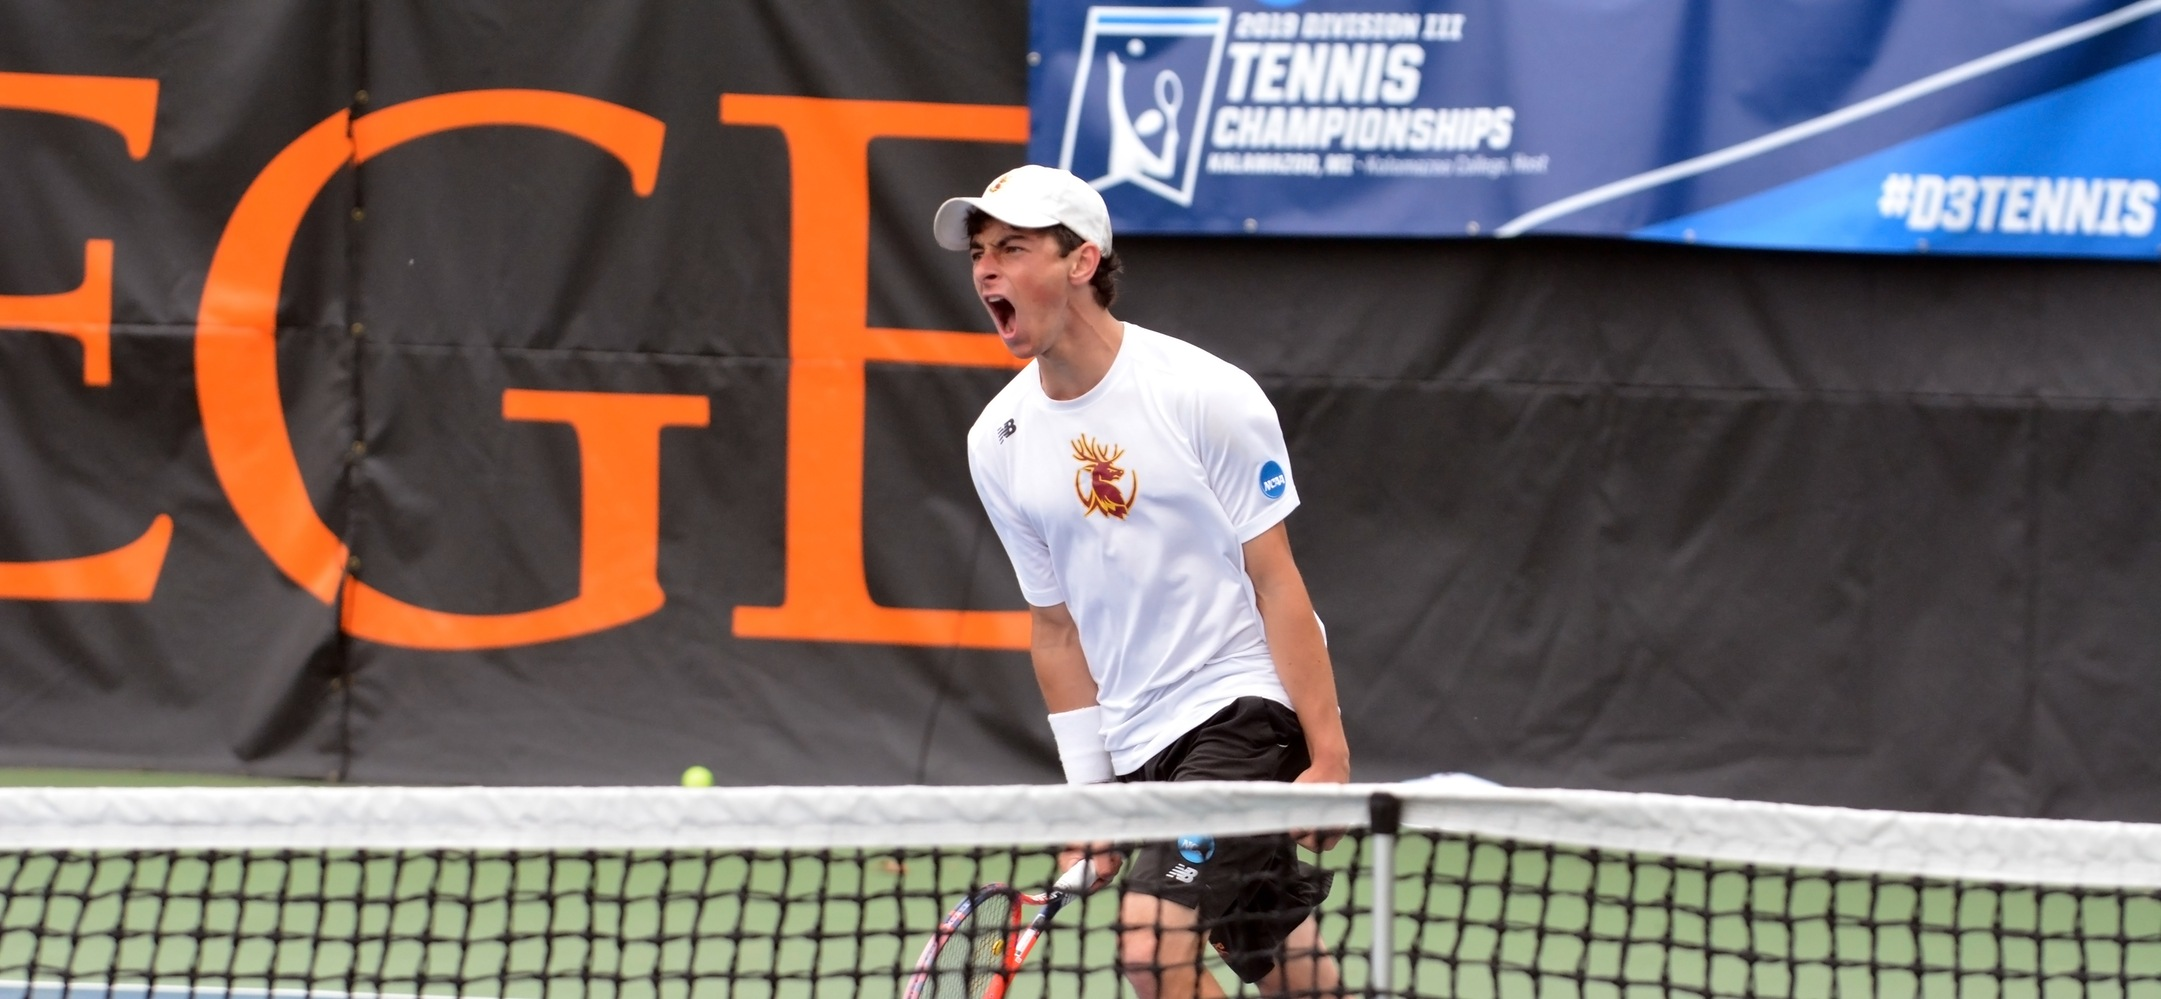 Jack Katzman celebrates his singles win in a 5-1 NCAA semifinal victory over Chicago